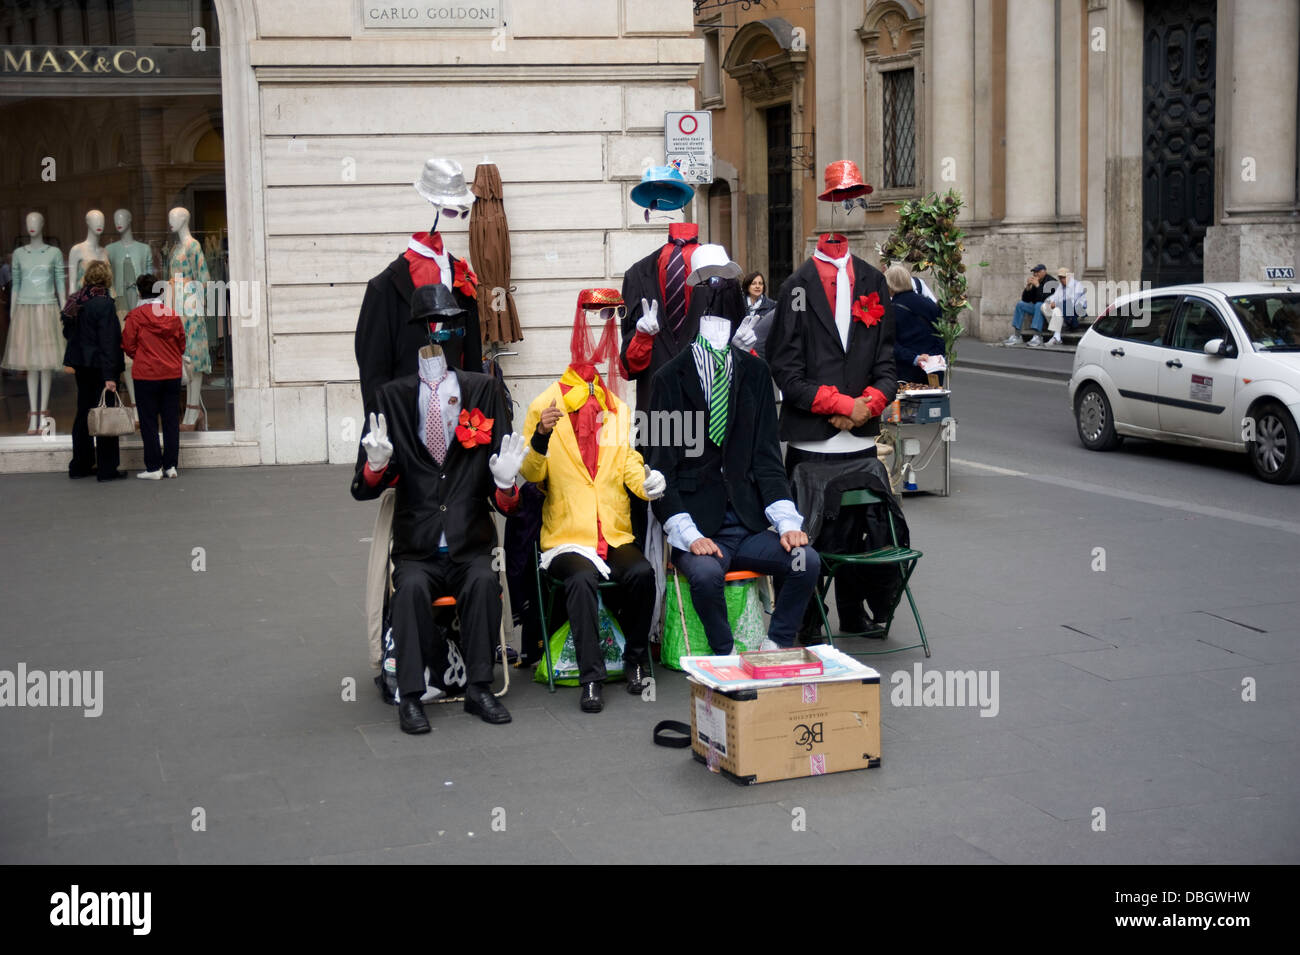 A group of six comic street performers entertaining tourists and locals in Rome, Italy. - Stock Image